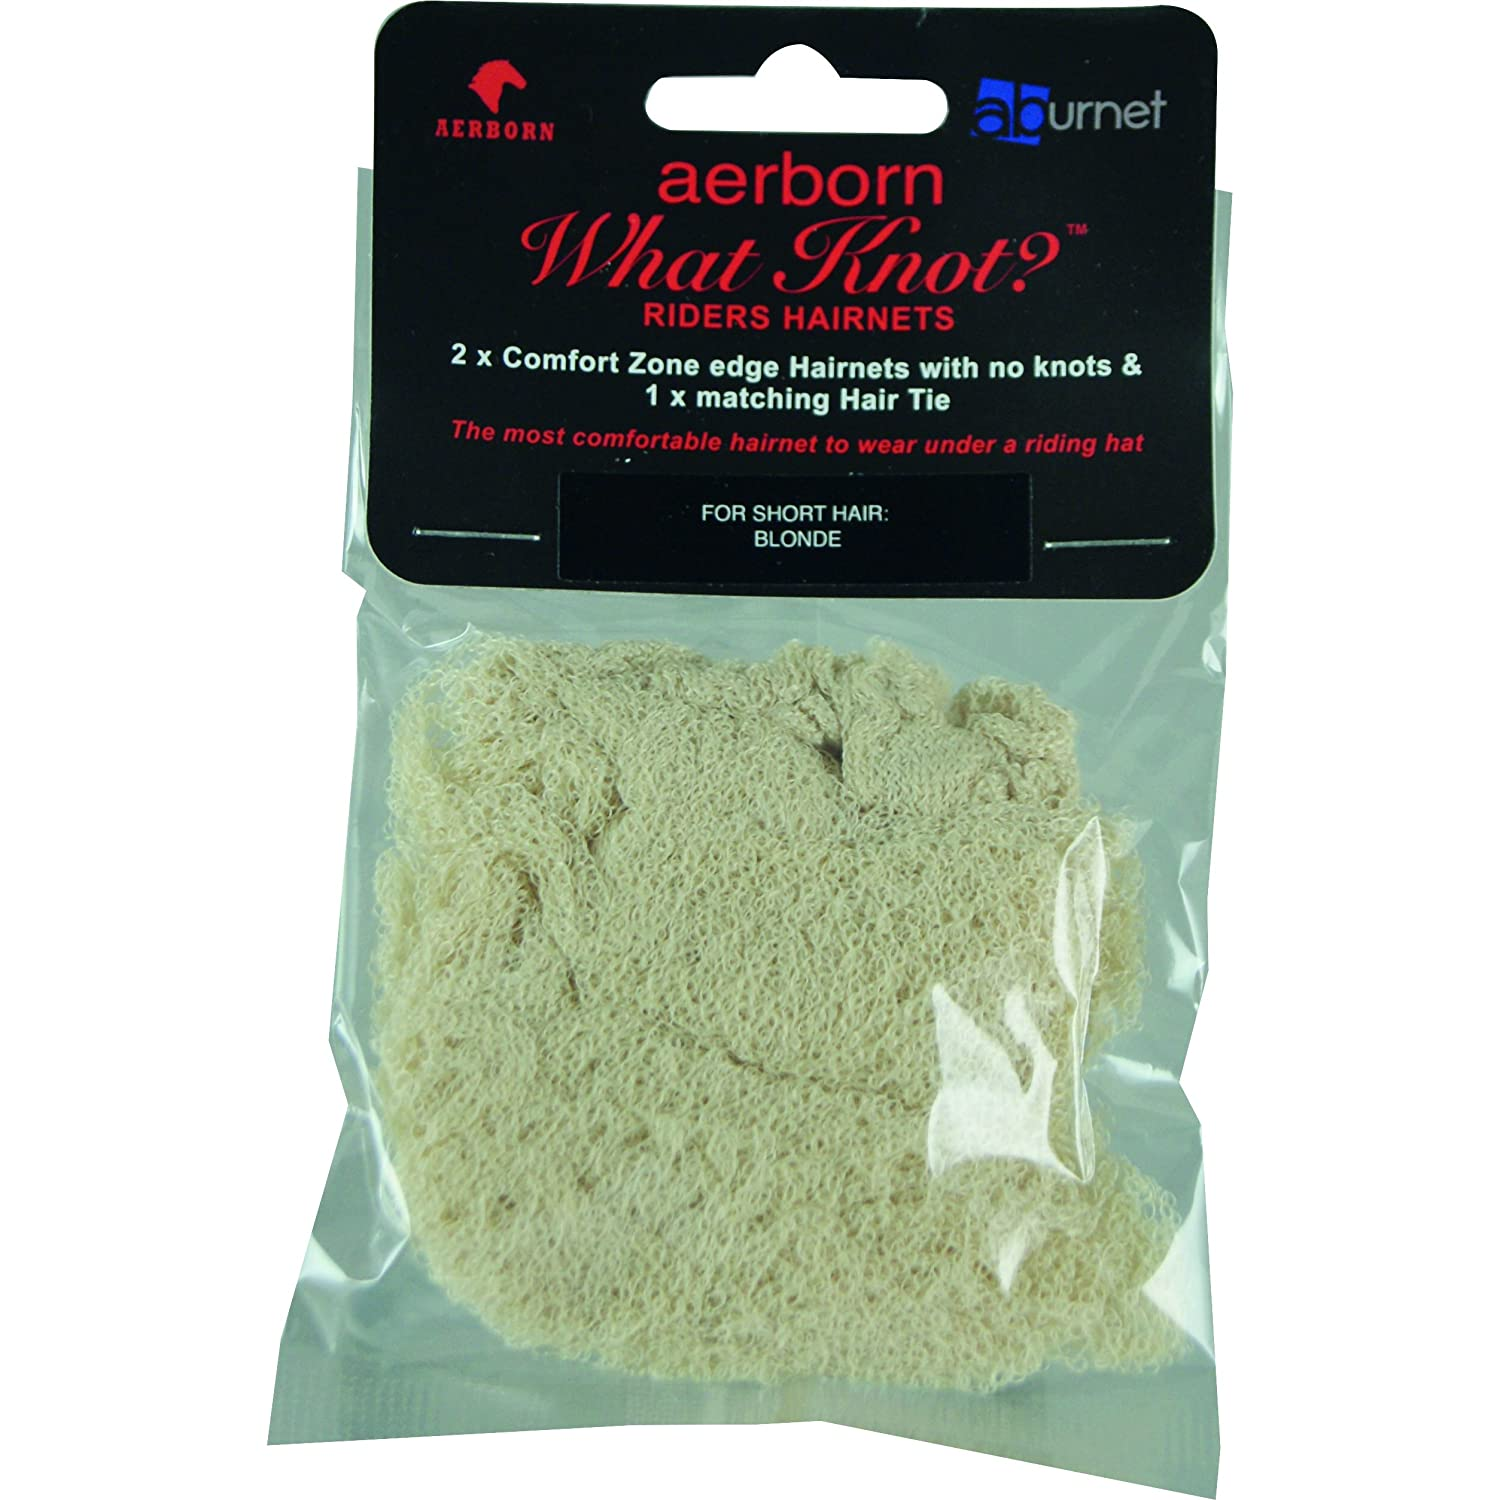 Aerborn What Knot Short Hair Hairnets (Pack Of 2) (One Size) (Blonde) UTTL108_2